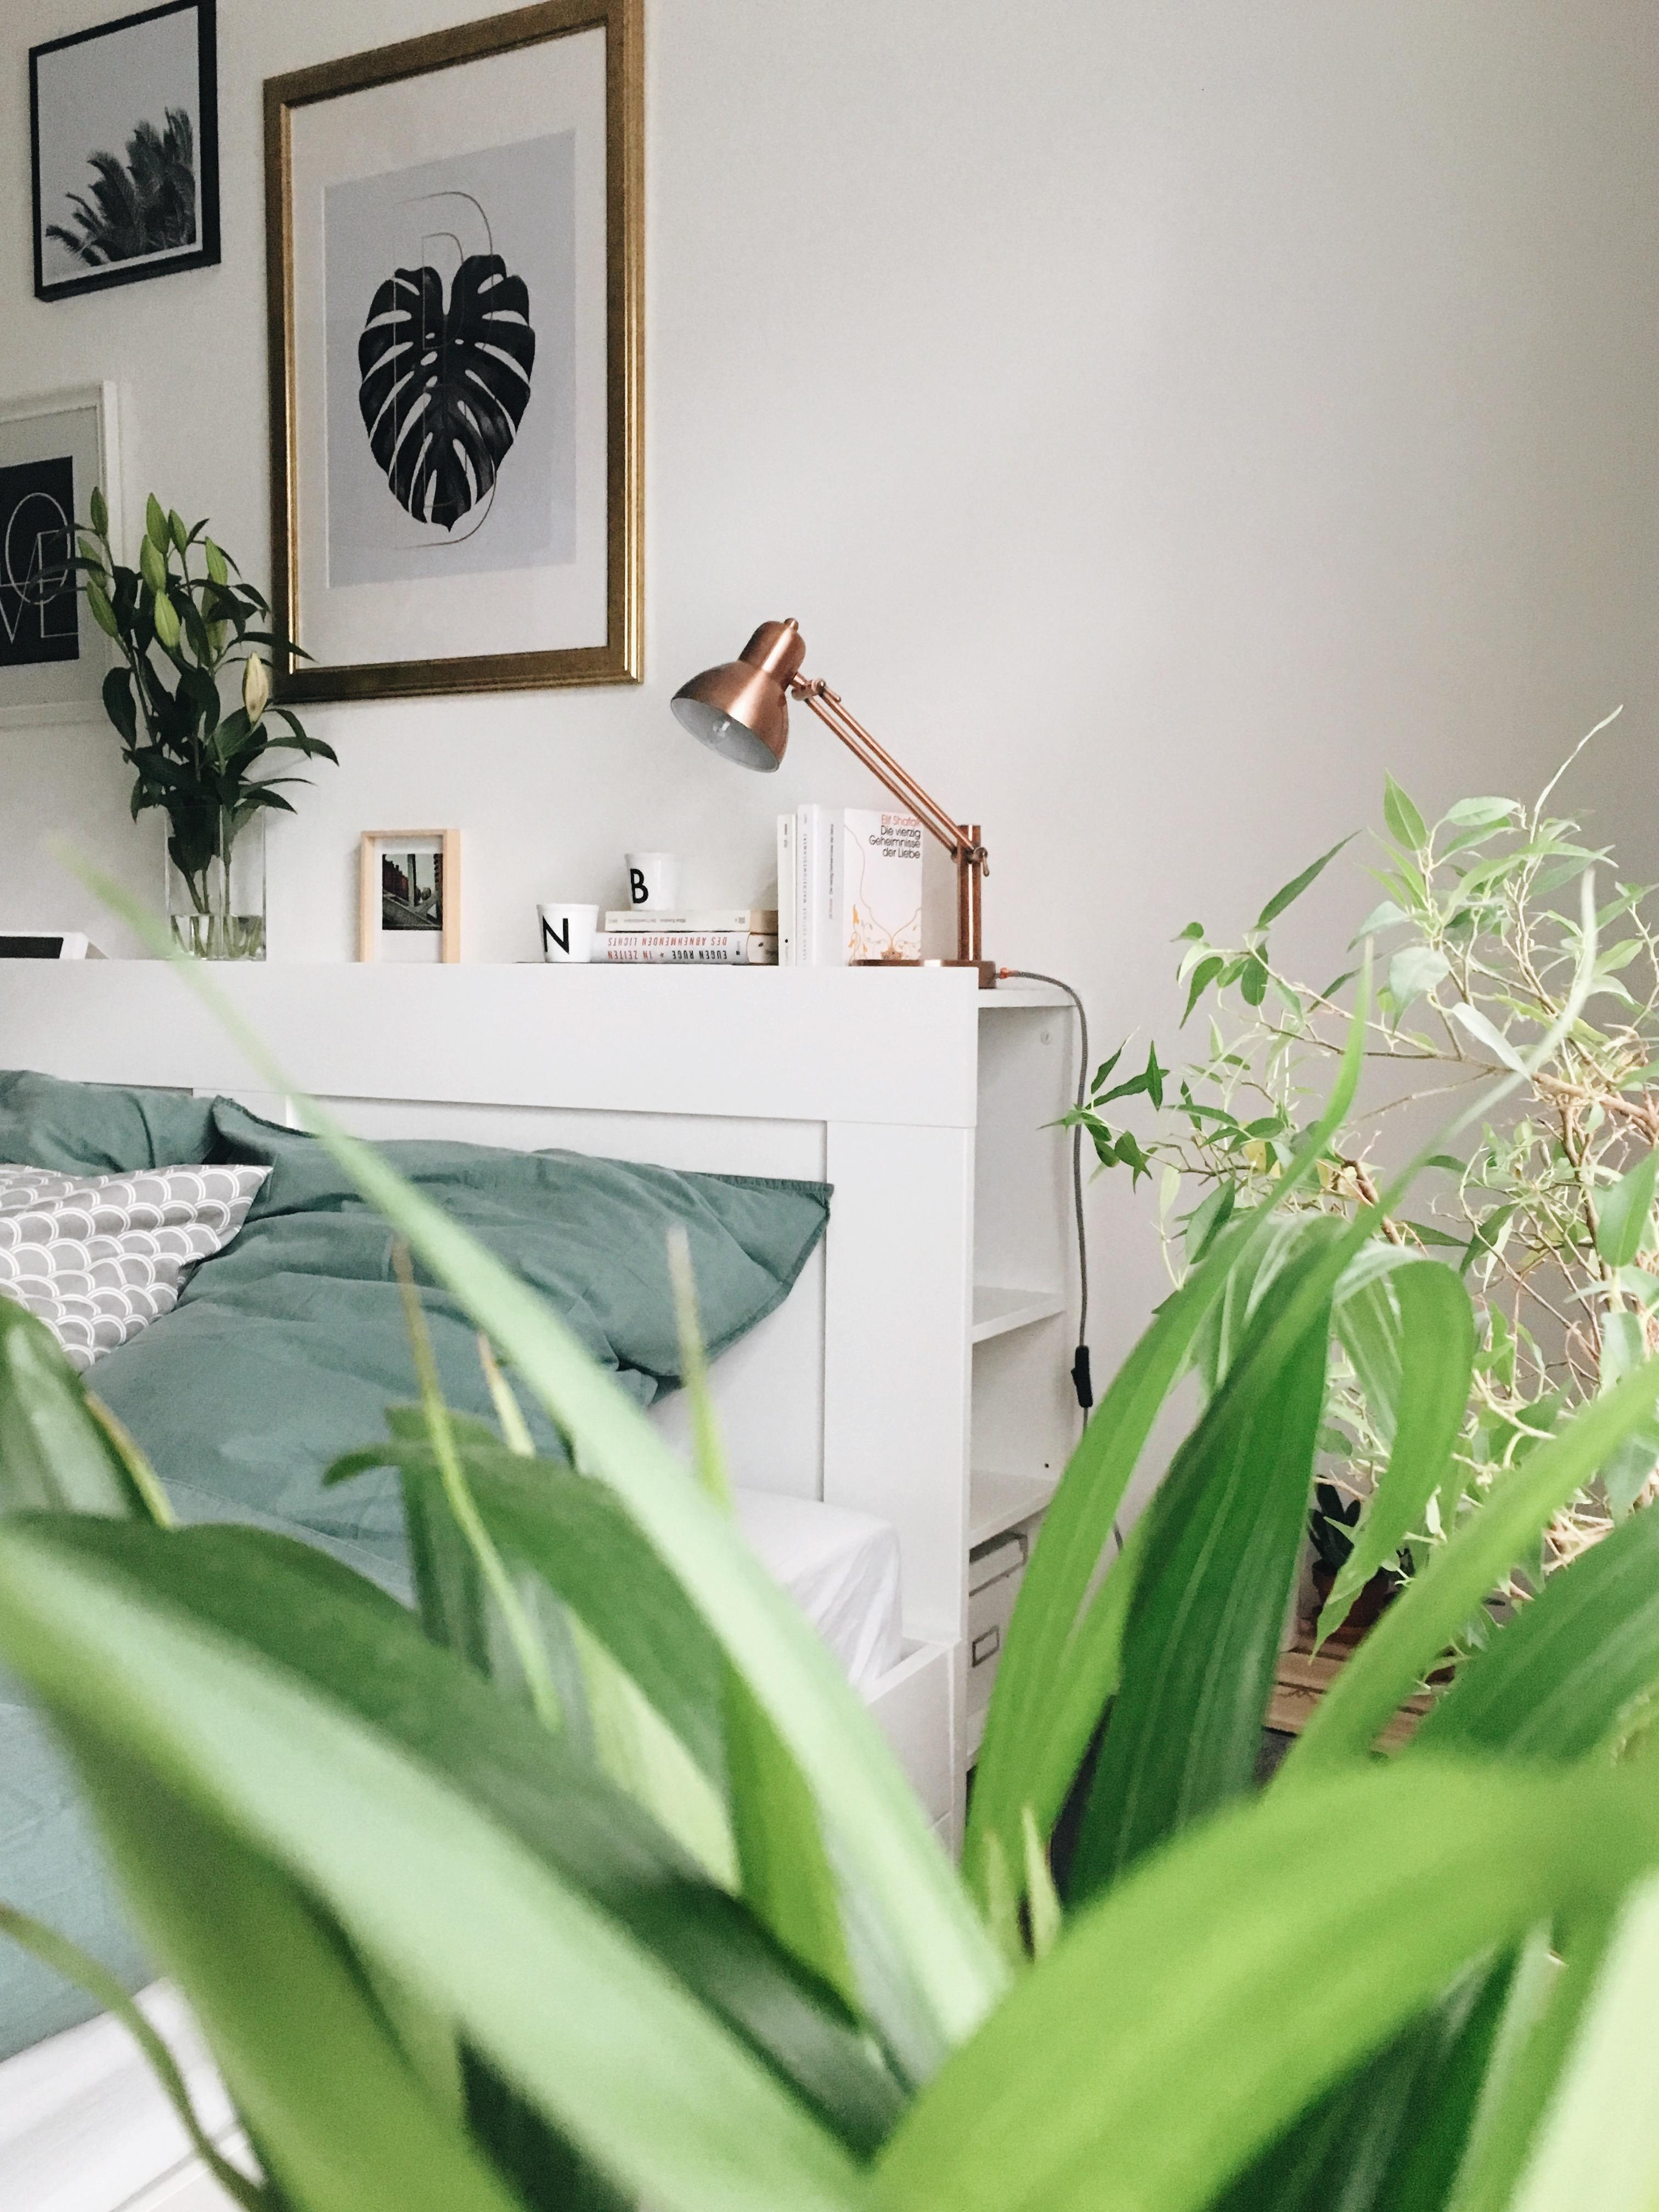 Welcome to the urban jungle! #schlafzimmer #urbanjungle #scandistyle